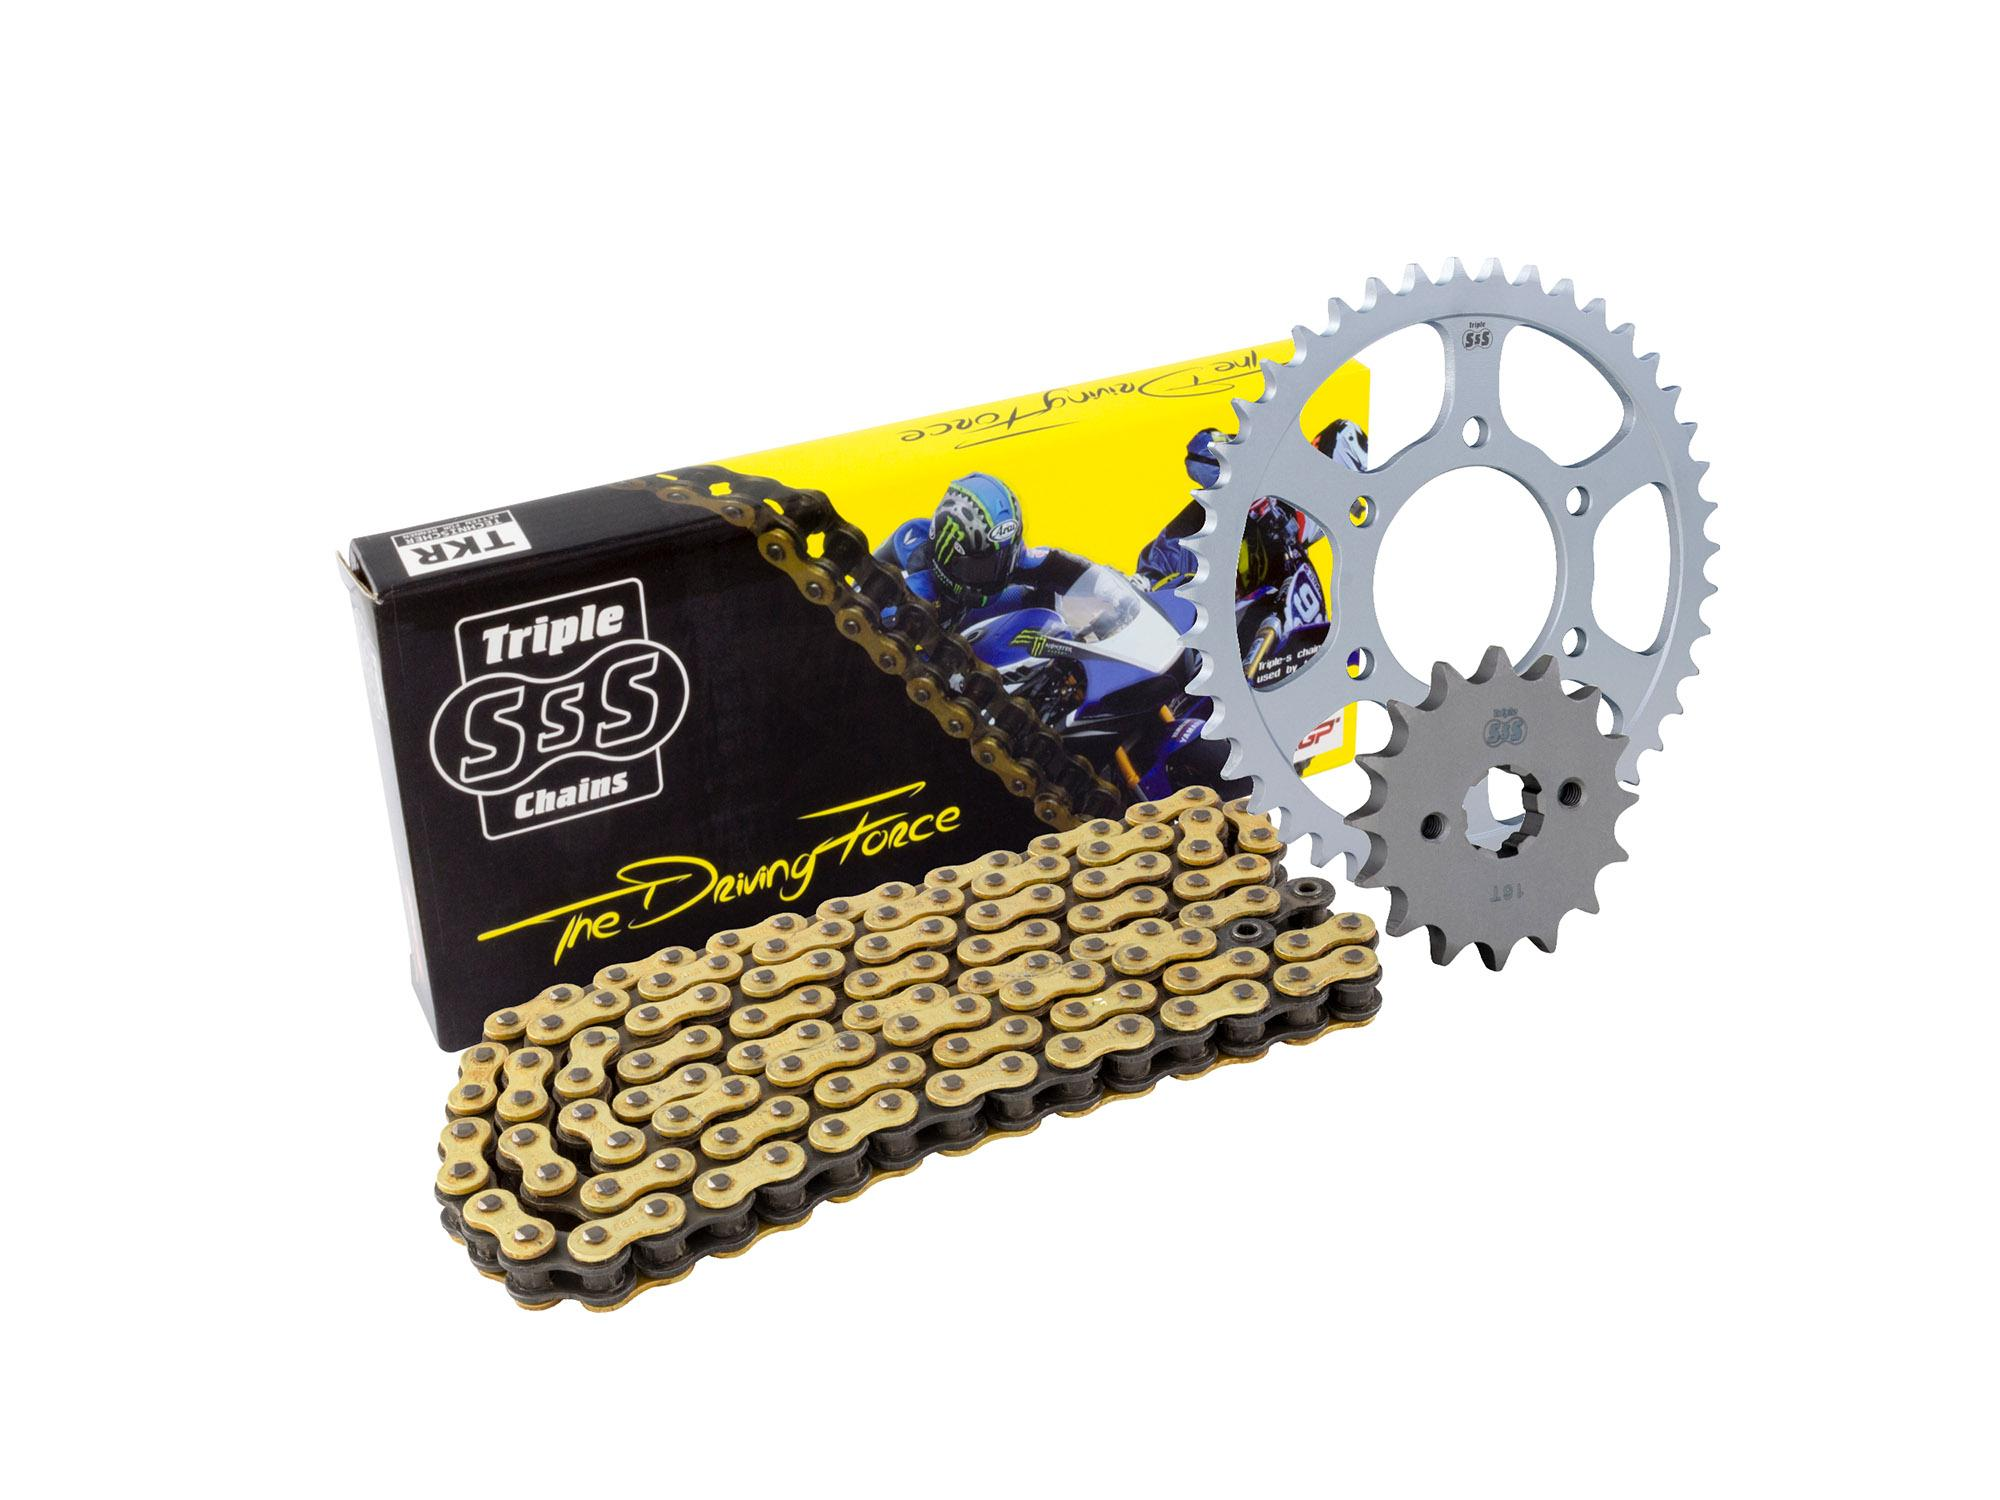 Kawasaki ZX14C 12> Chain & Sprocket Kit: 17T Front, 42T Rear, HD O-Ring Gold Chain 530H 118 Link